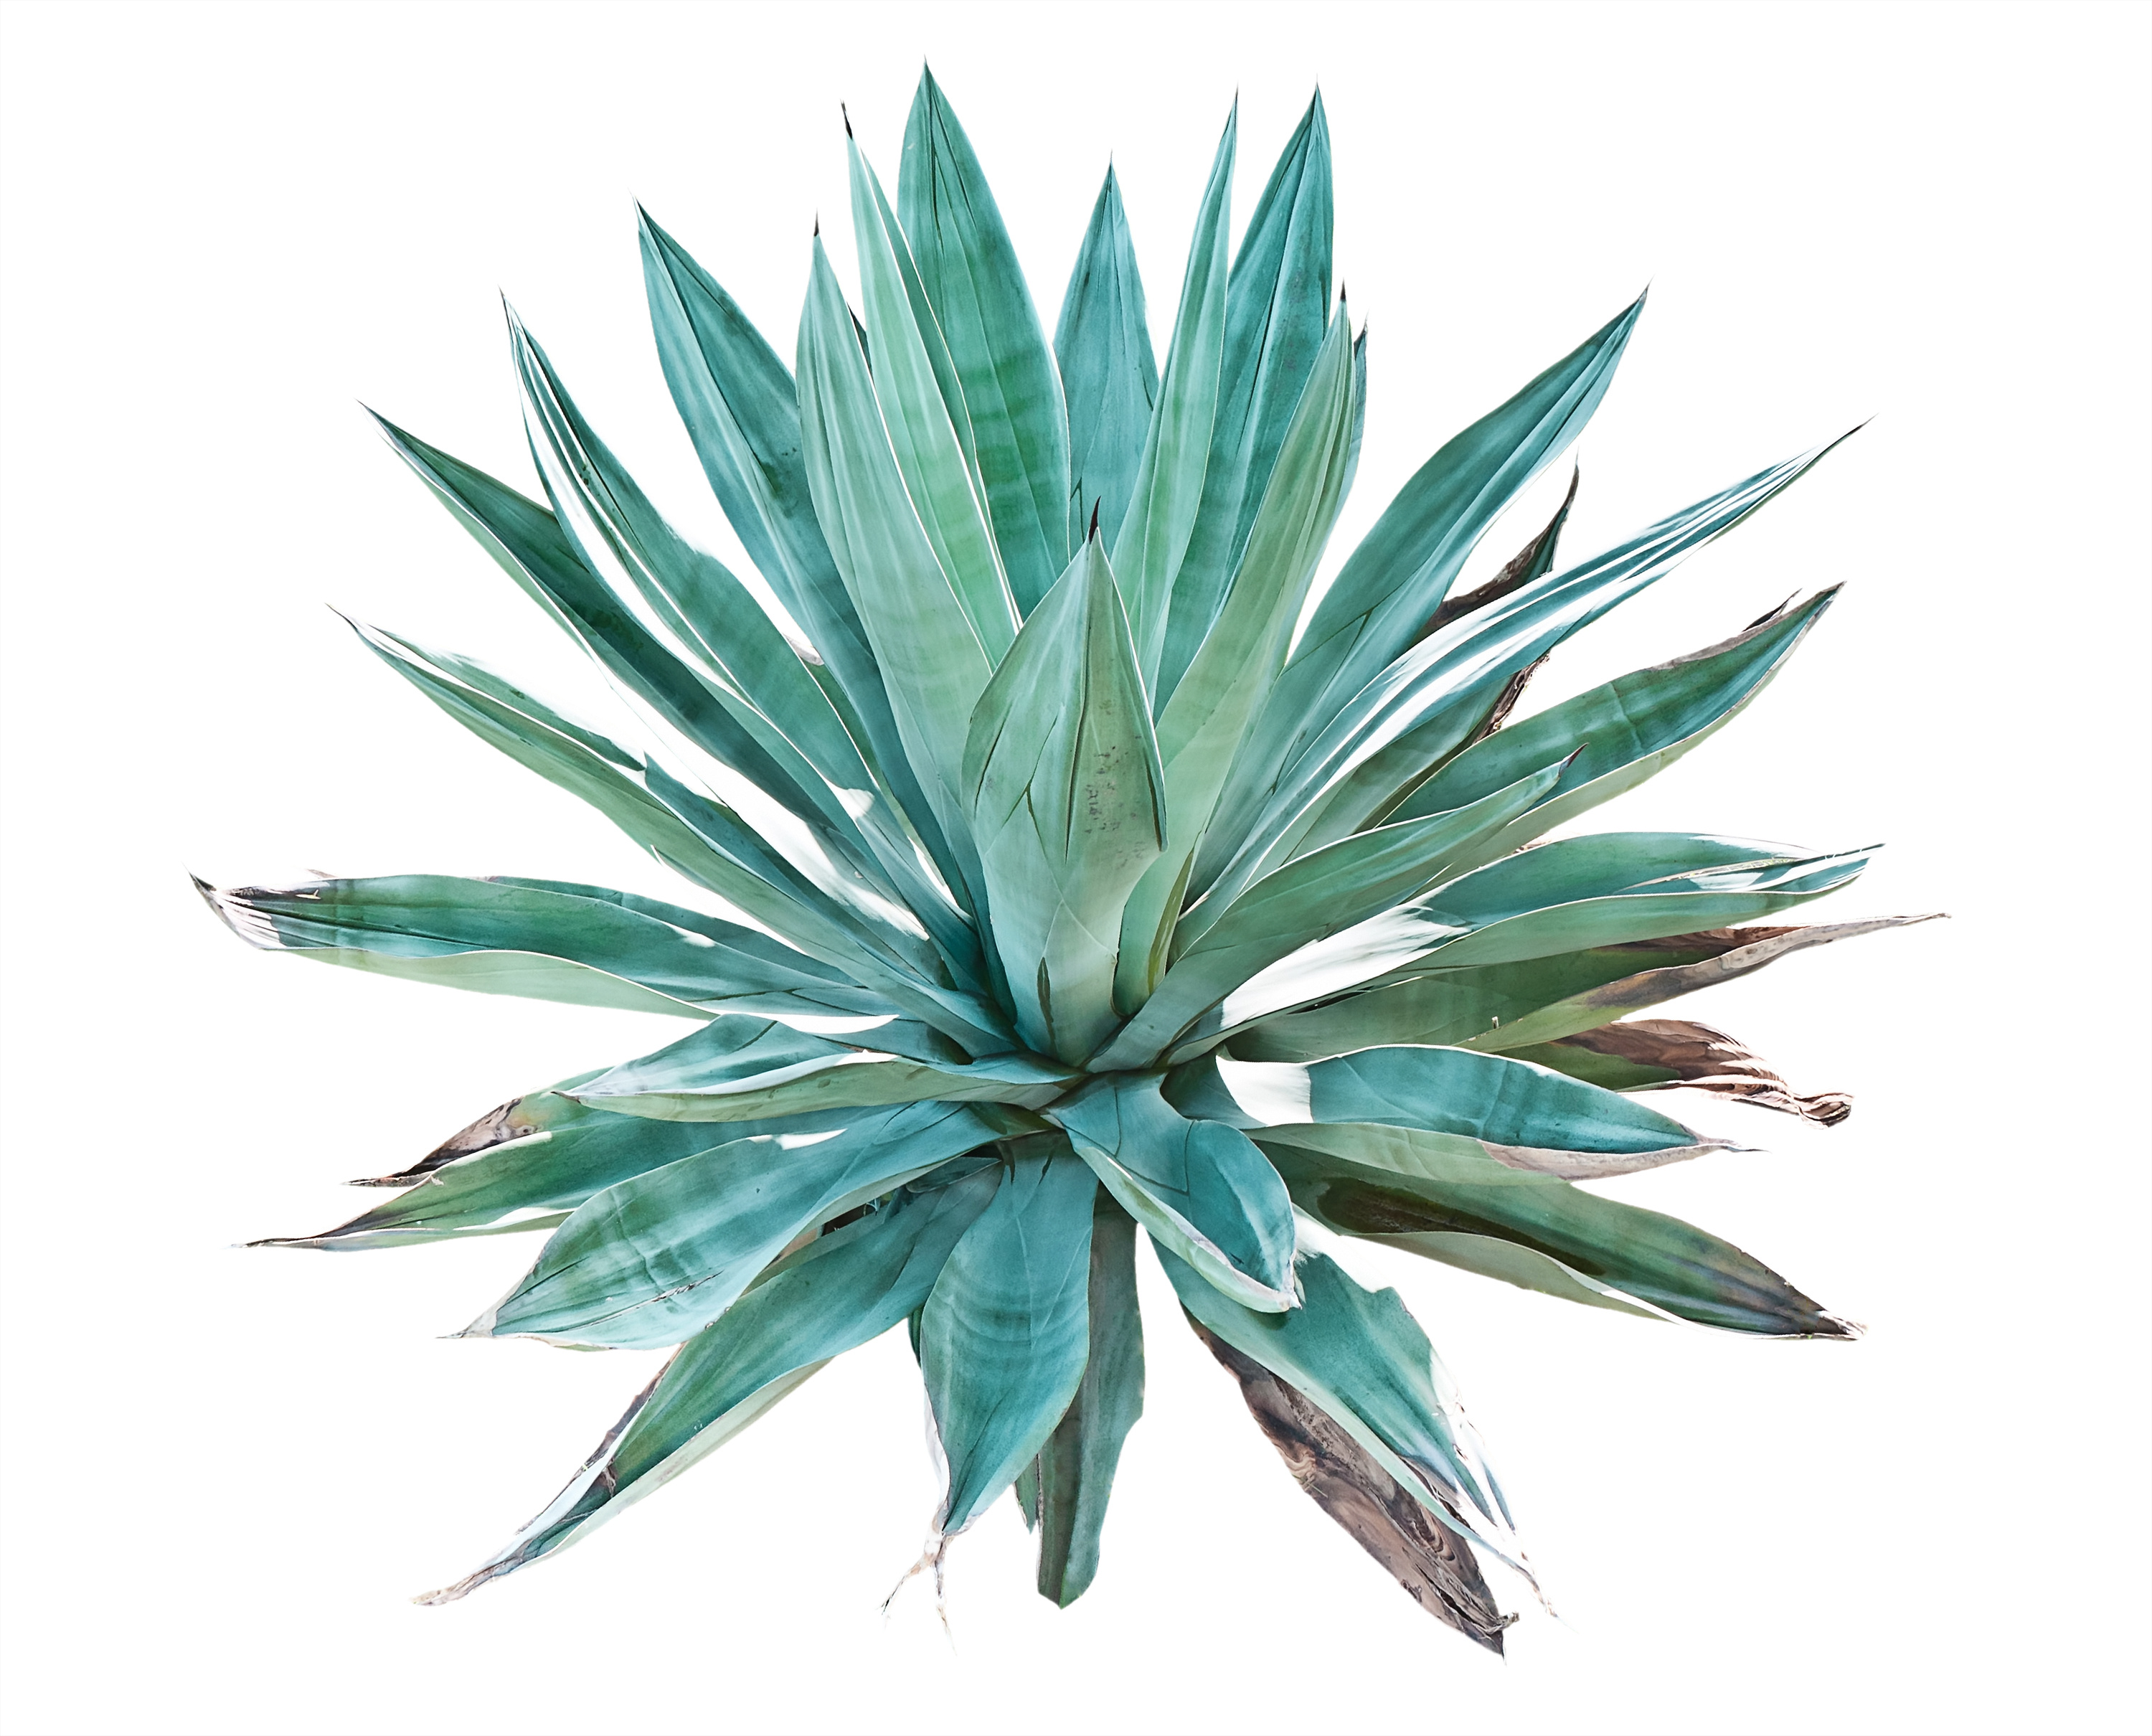 agave png transparent agavepng images pluspng